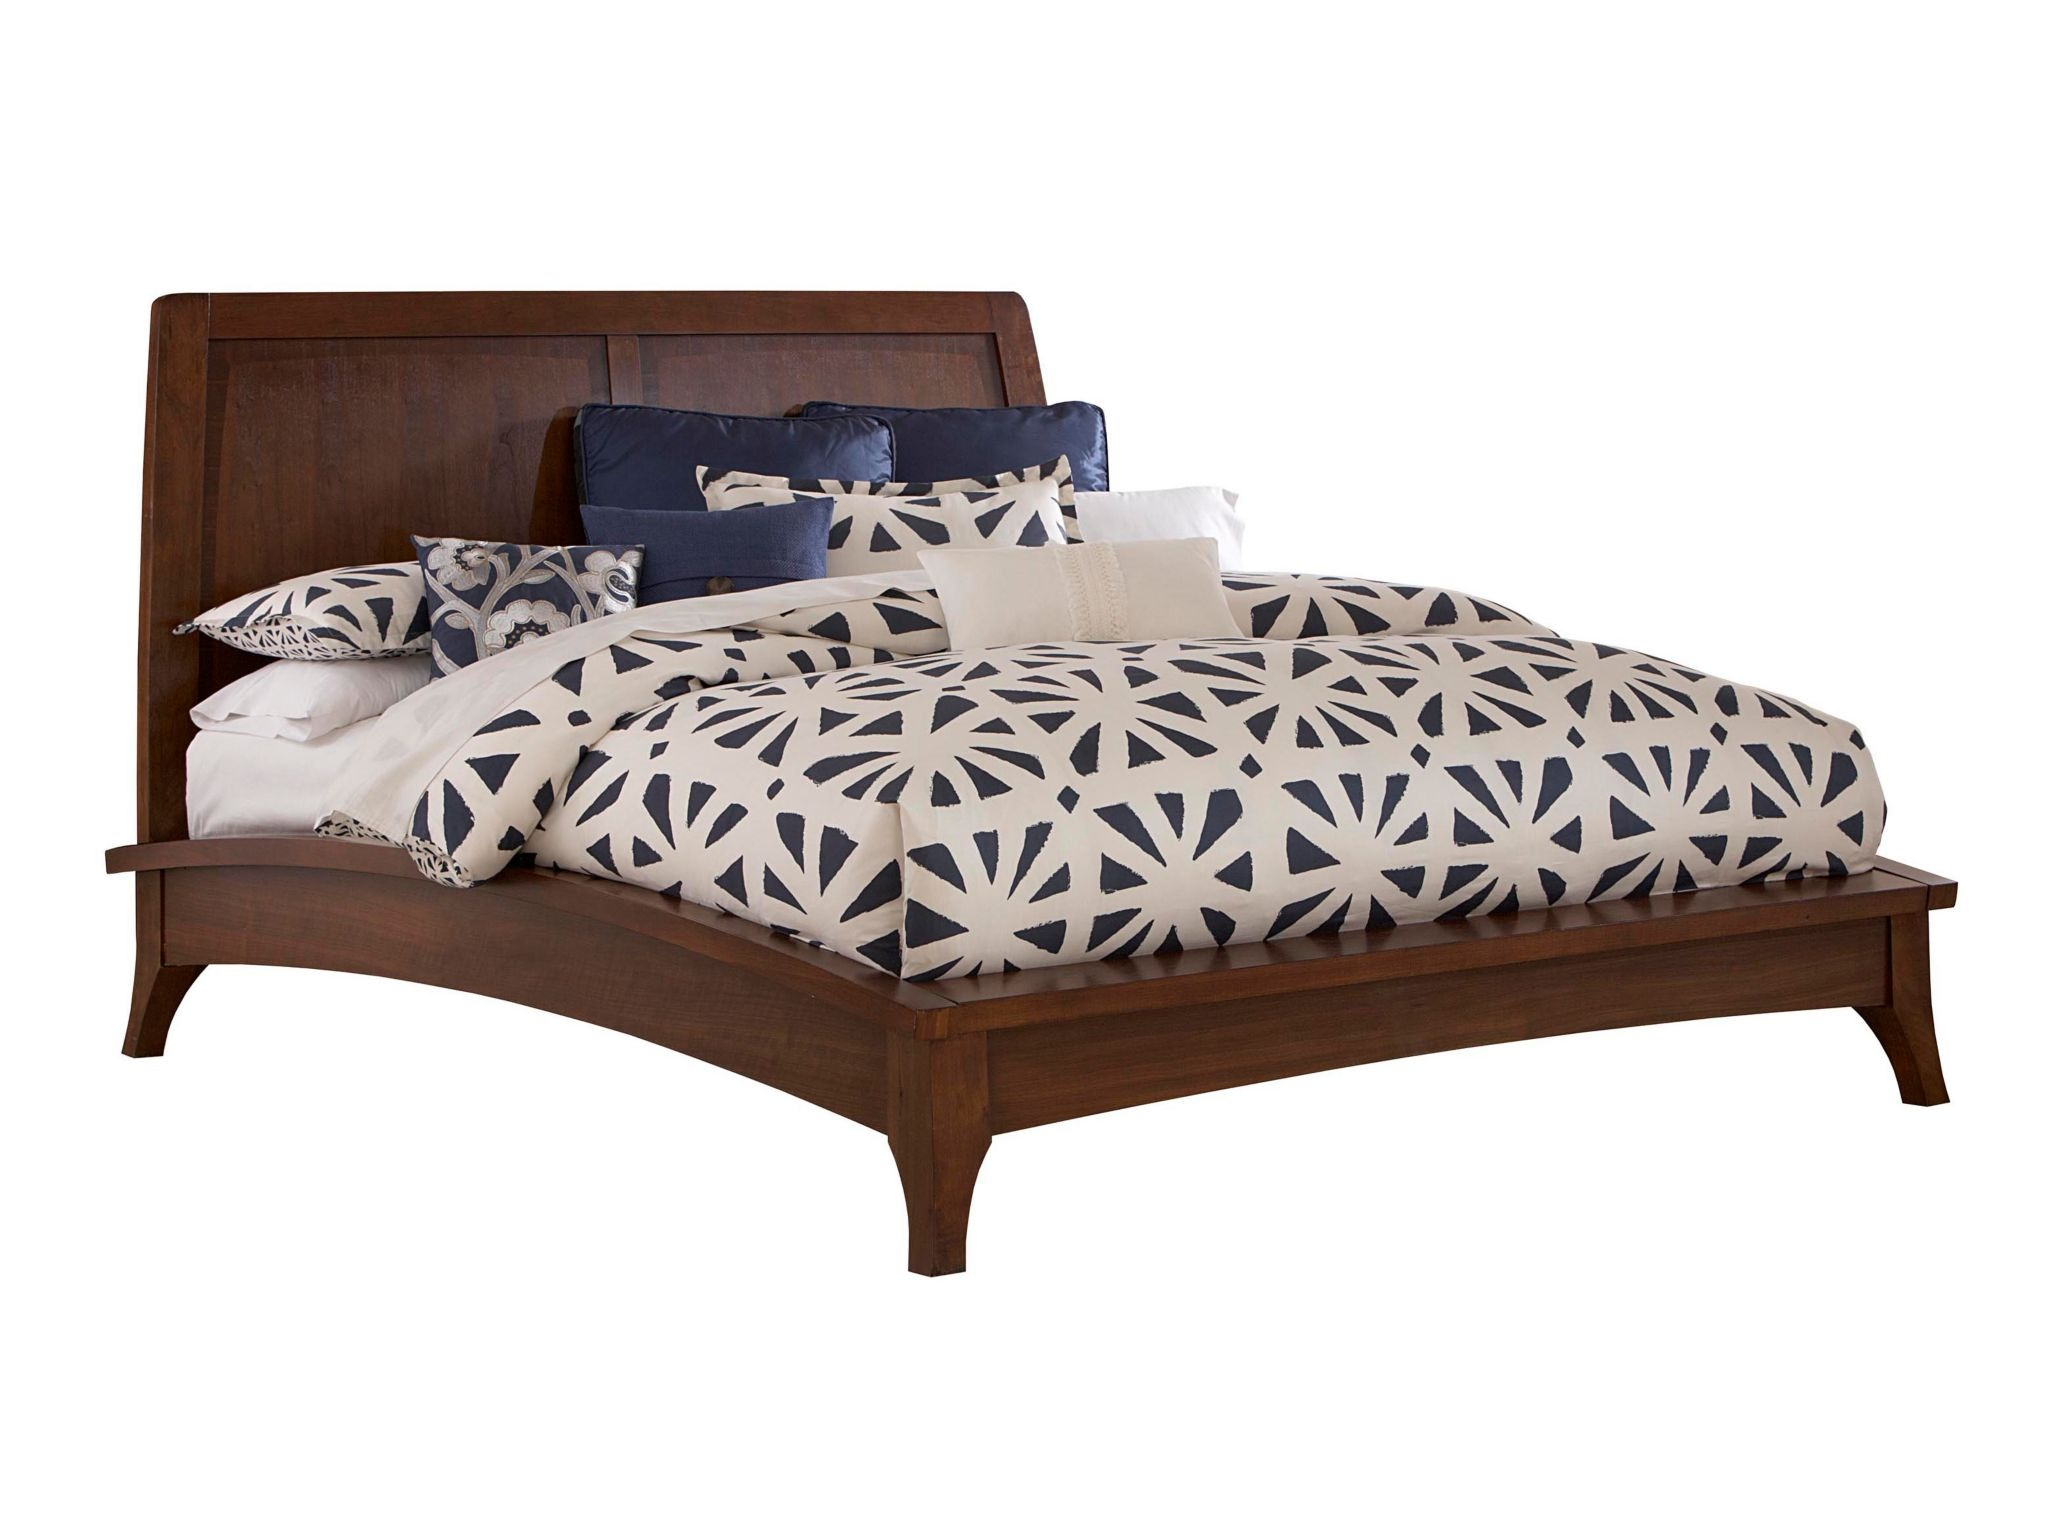 Broyhill Mardella Bed 4277 BED